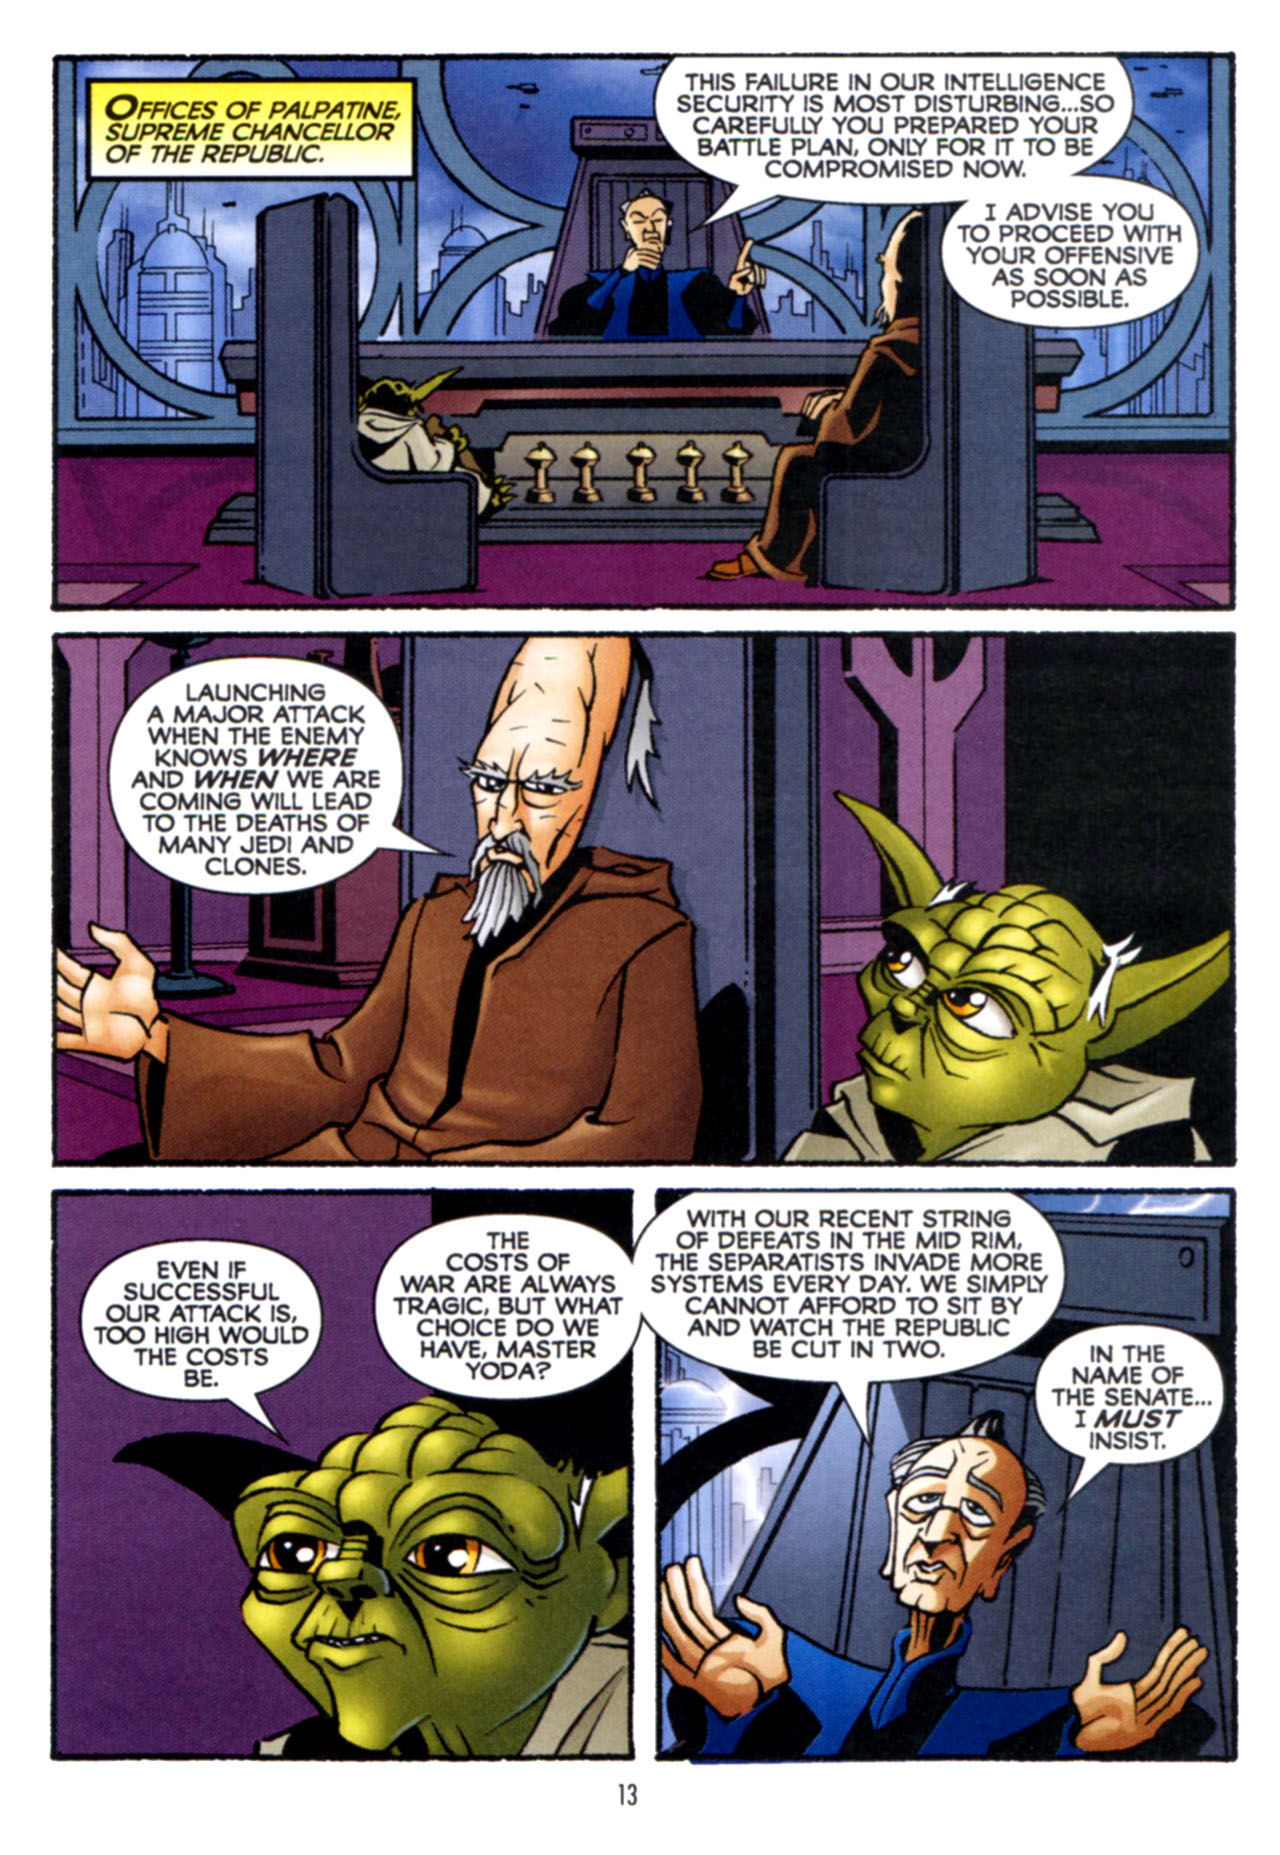 Read online Star Wars: The Clone Wars - Crash Course comic -  Issue # Full - 14